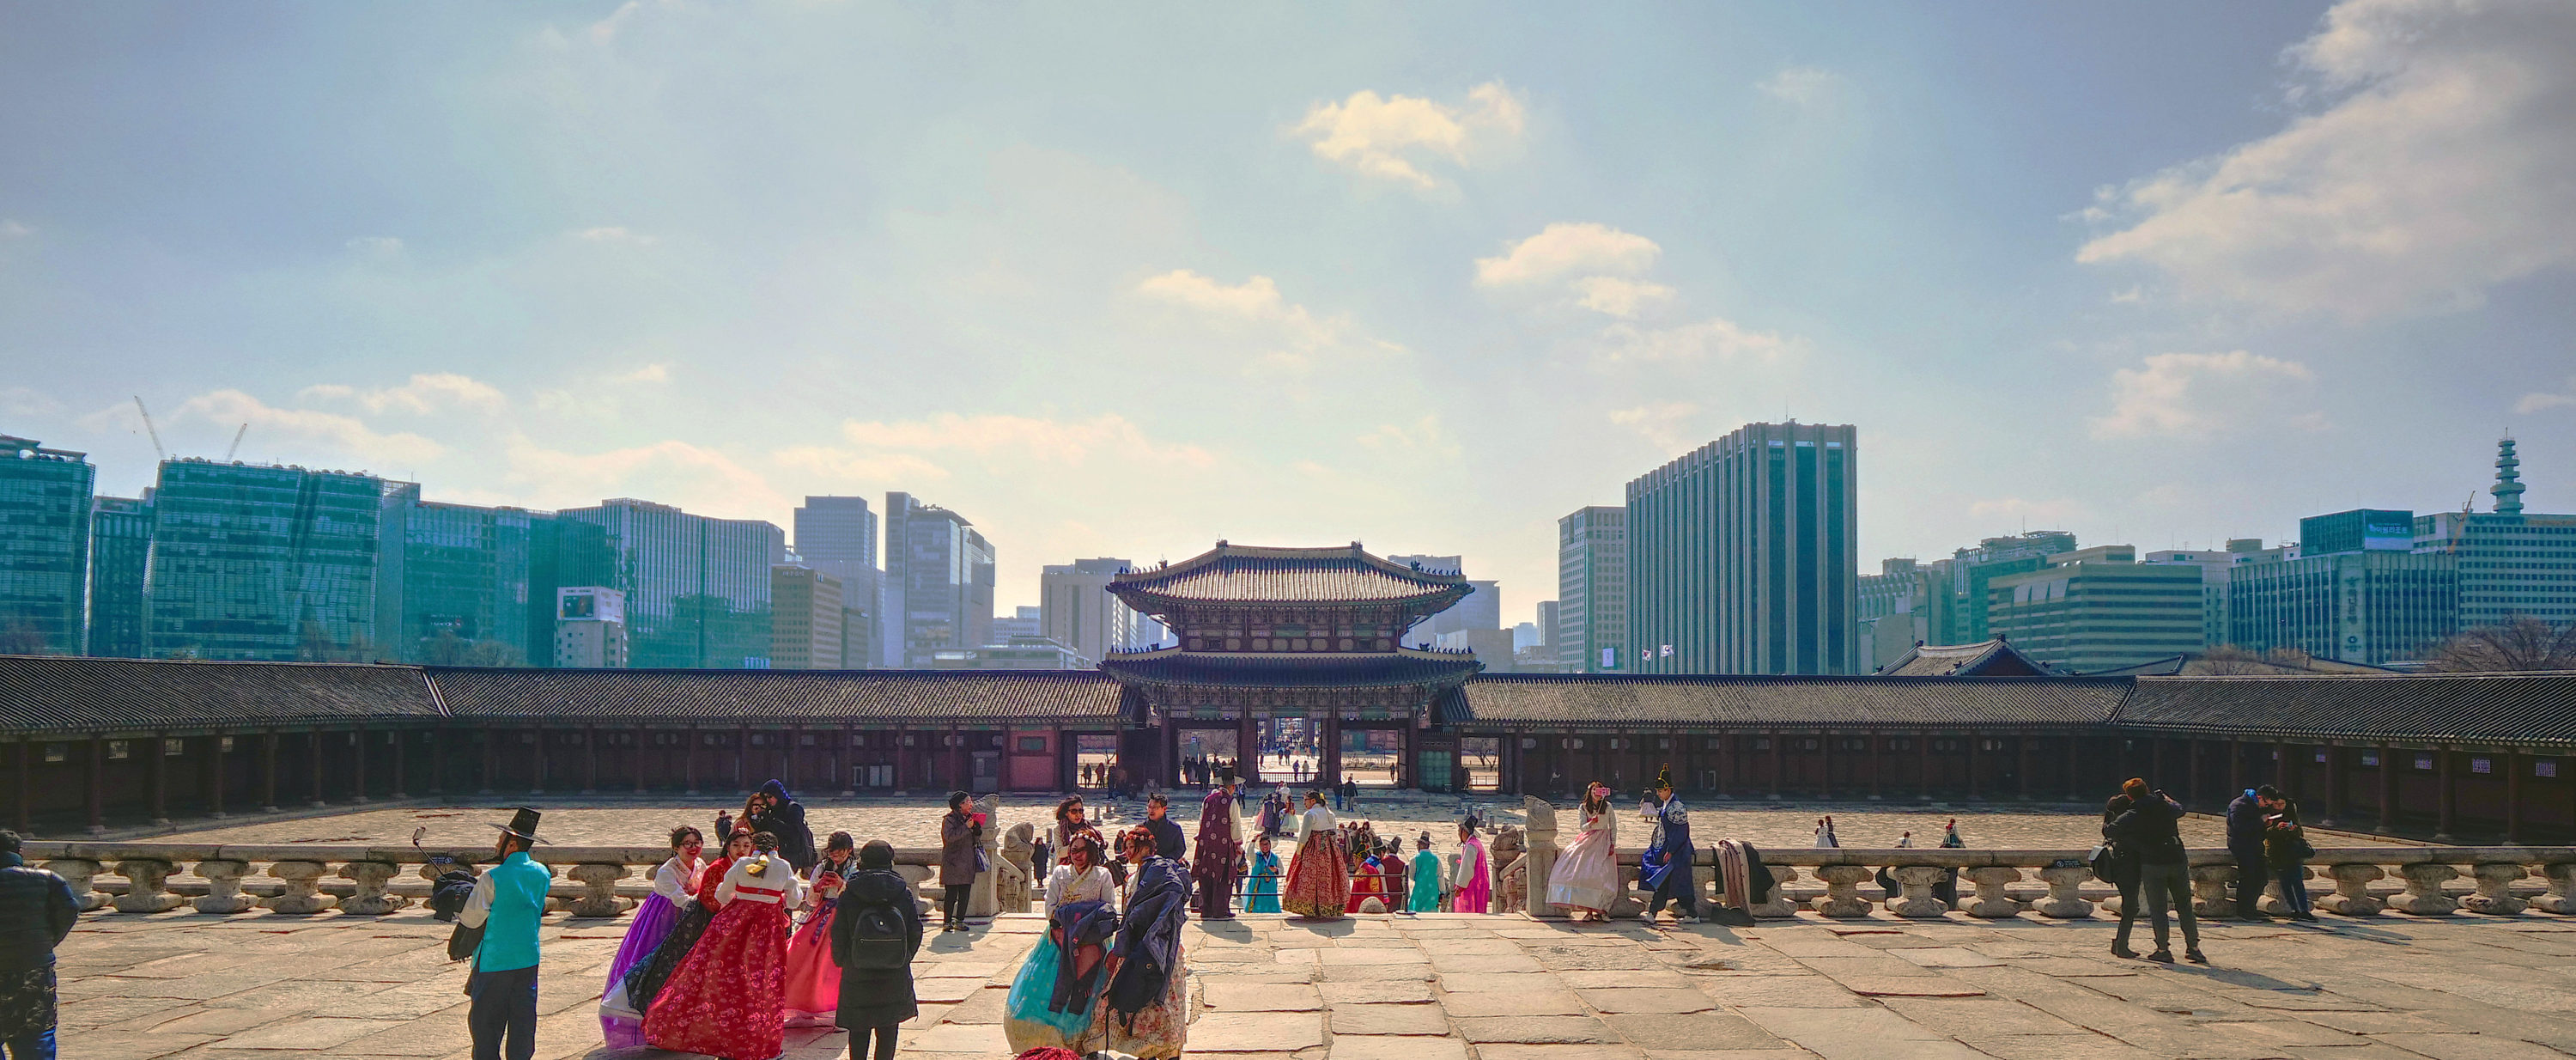 7 Things To Do In Seoul That Even Locals Love